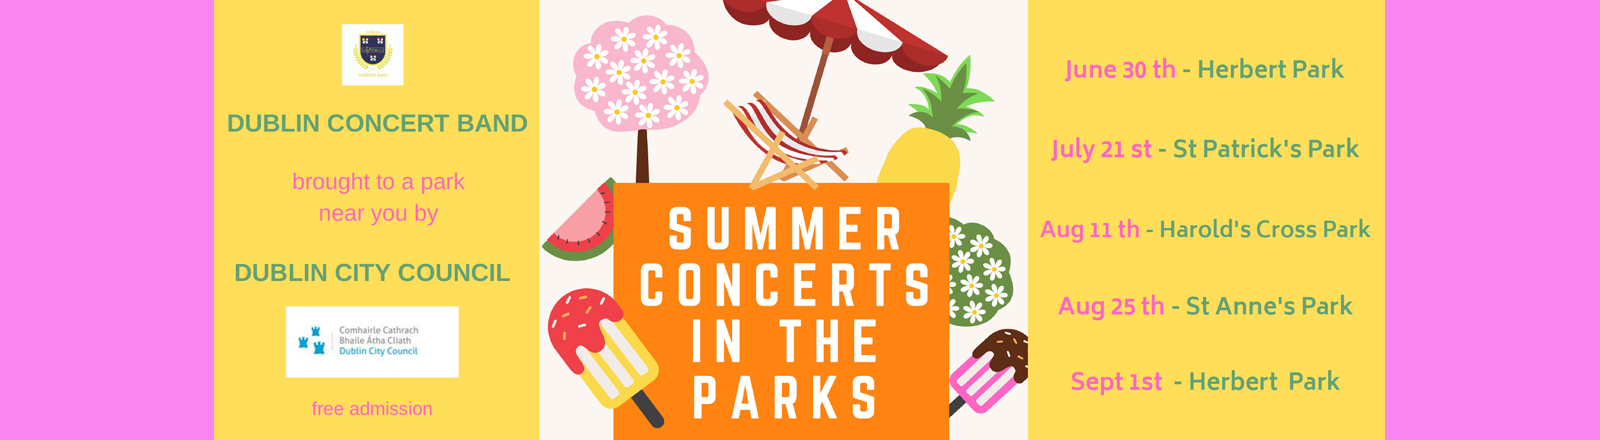 summer concerts series 2019